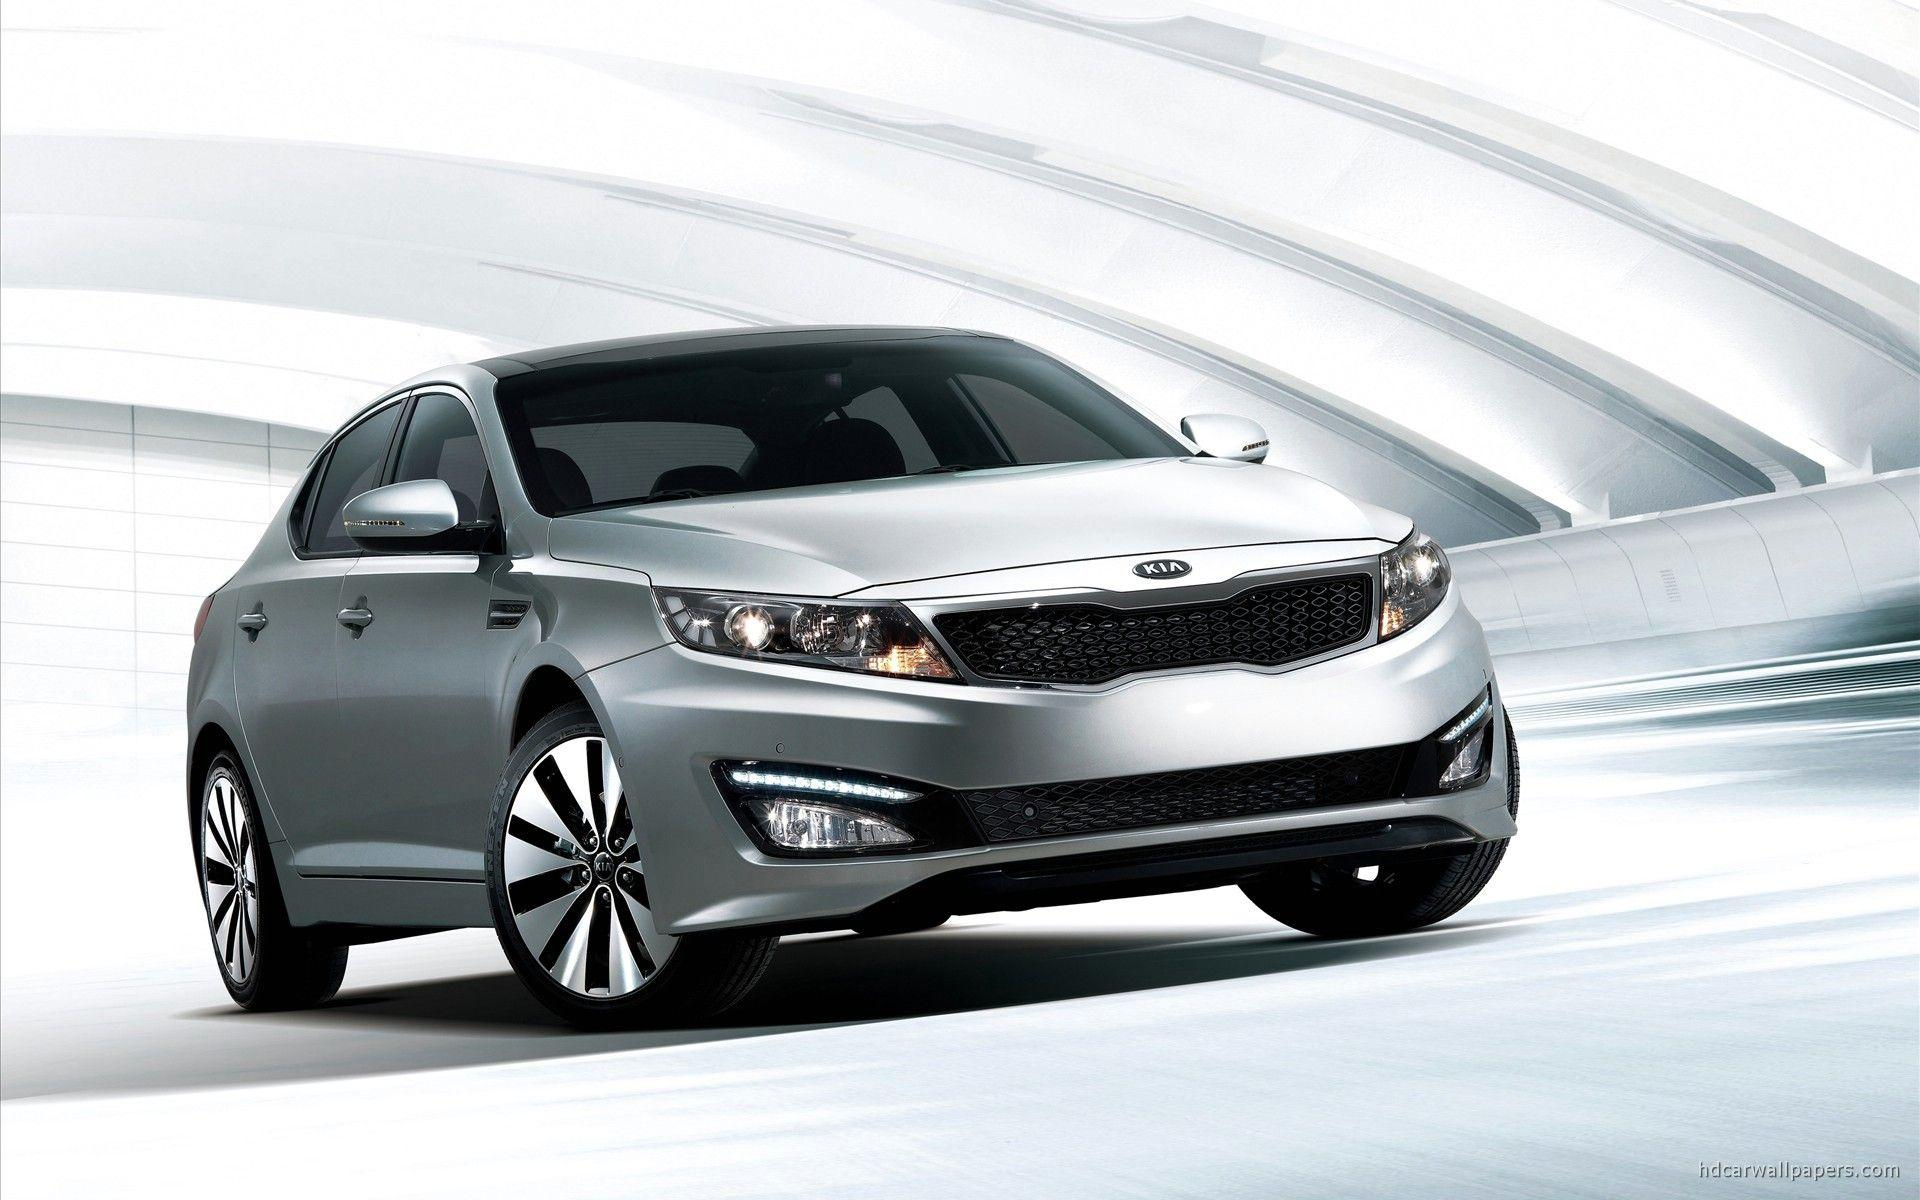 2011 Kia Optima Wallpaper | HD Car Wallpapers